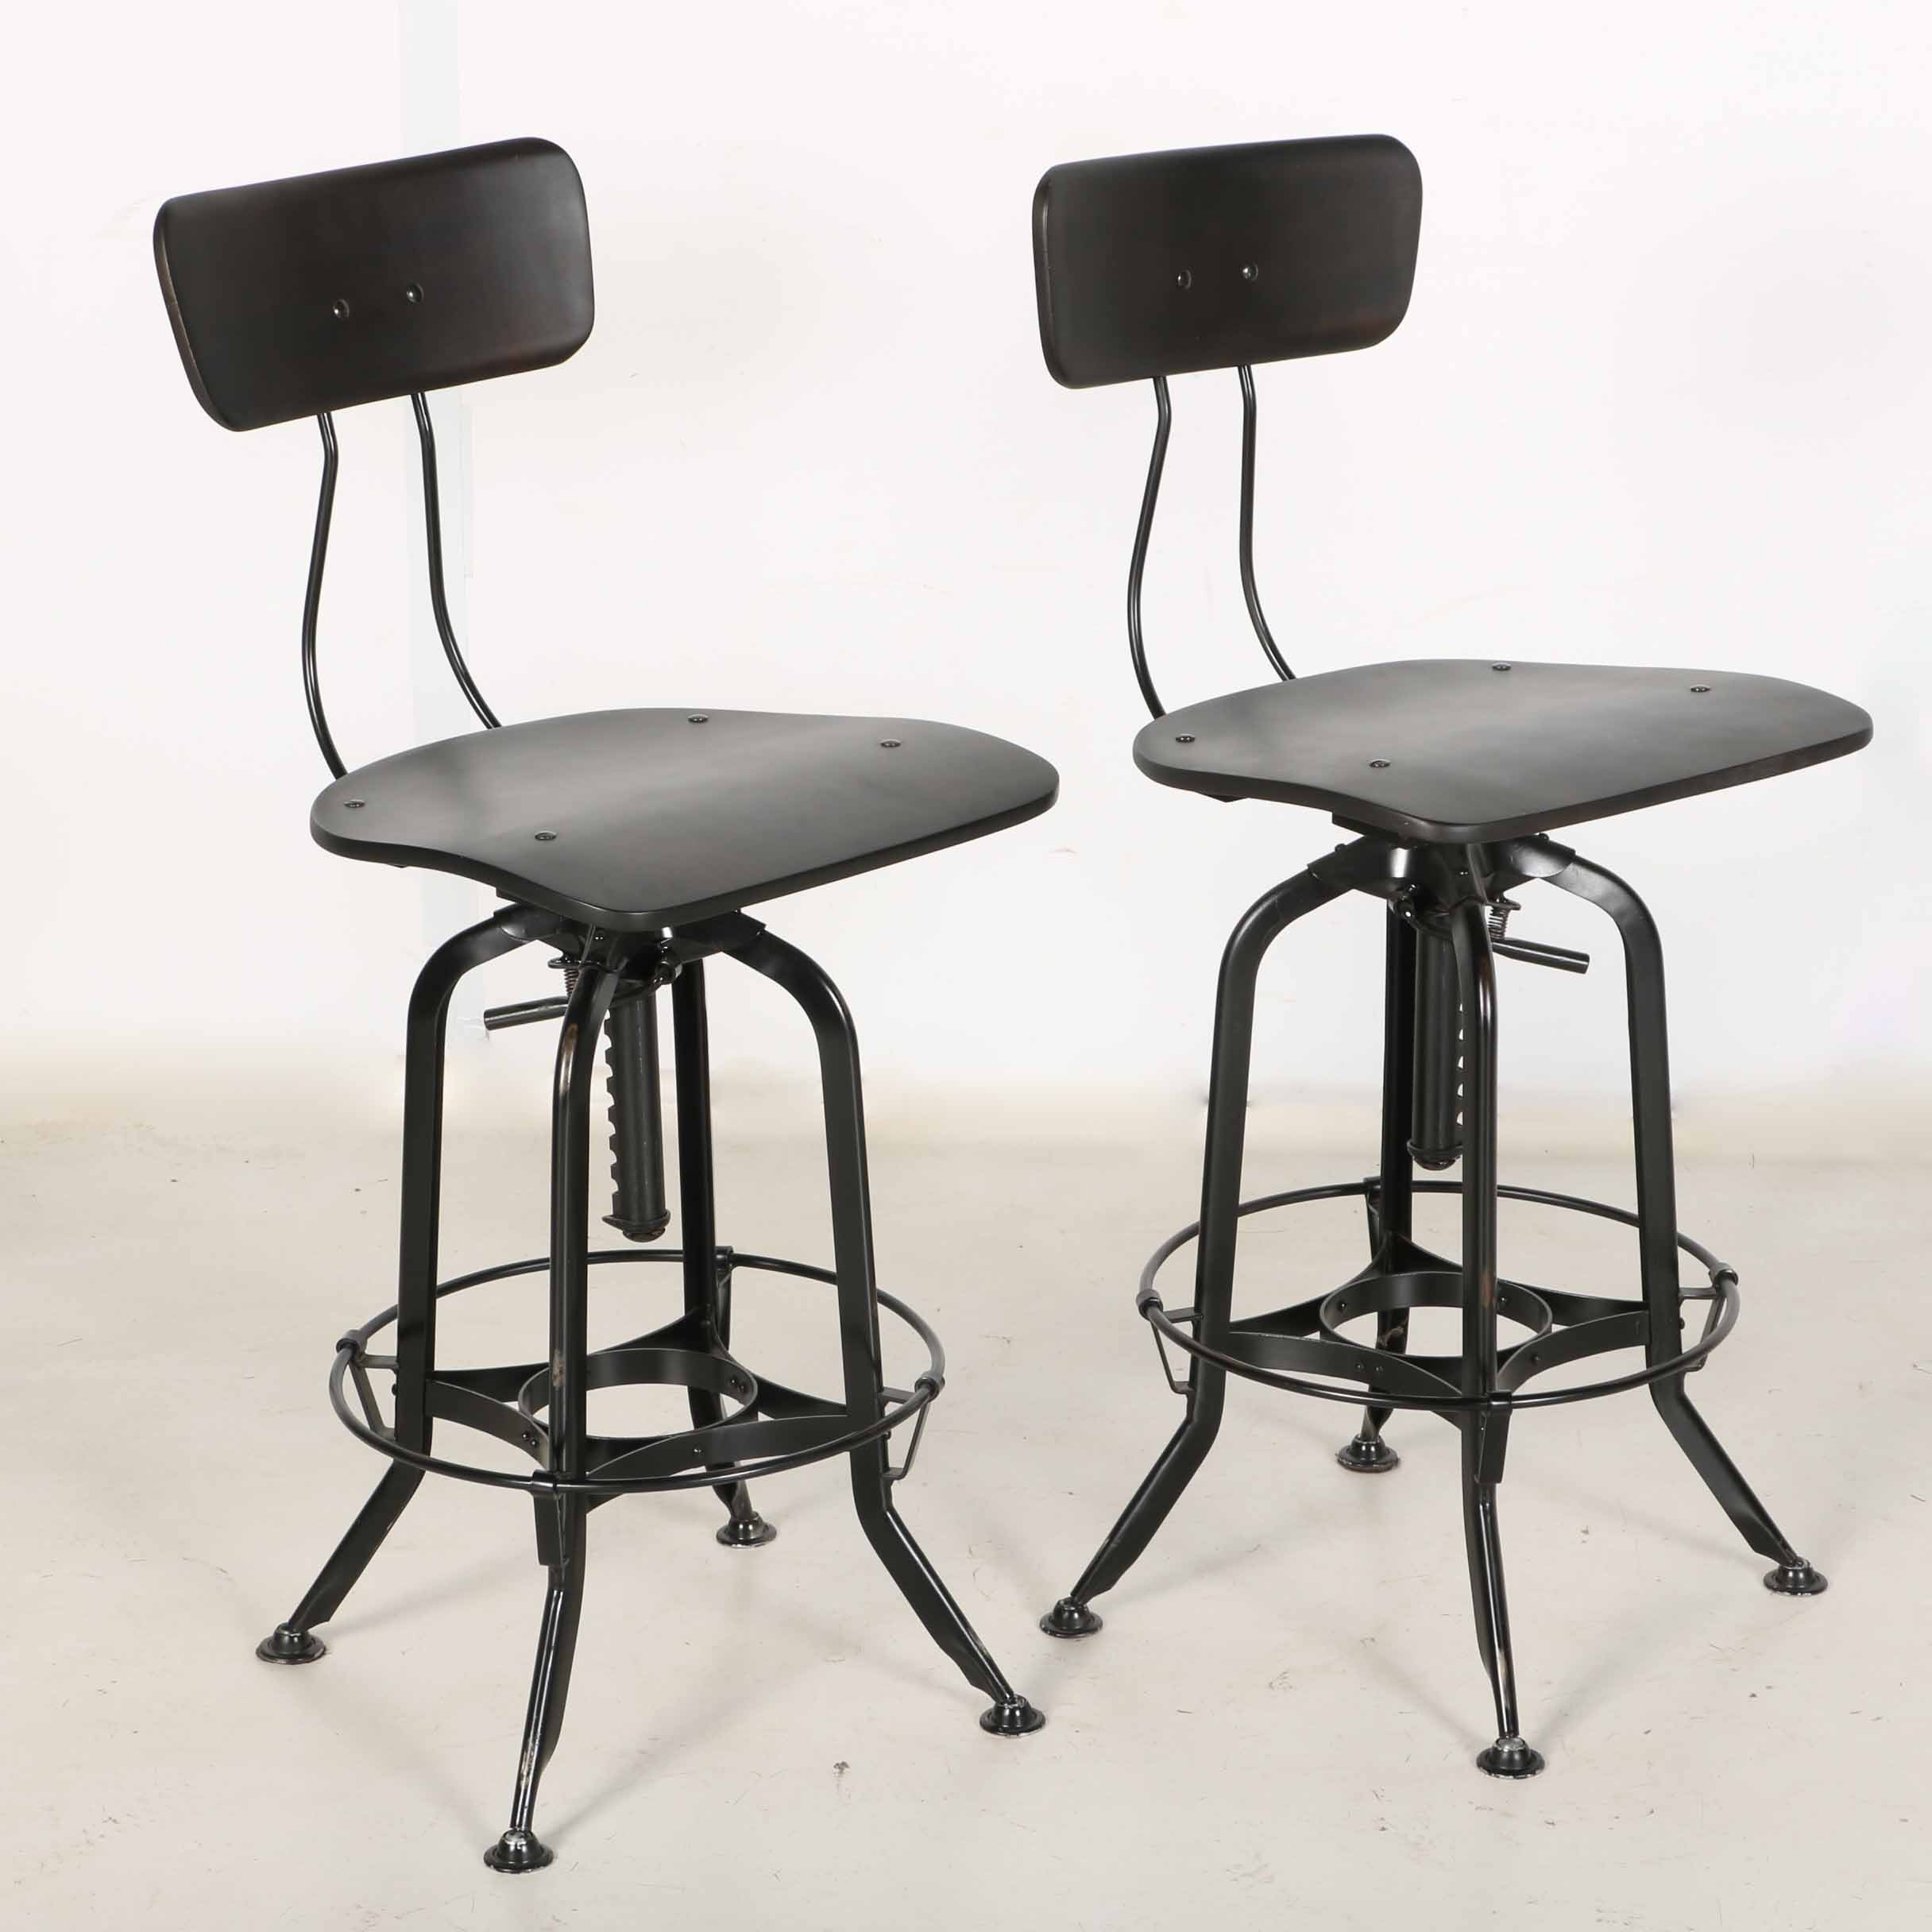 Black Toledo Style Metal Bar Stools From Restoration